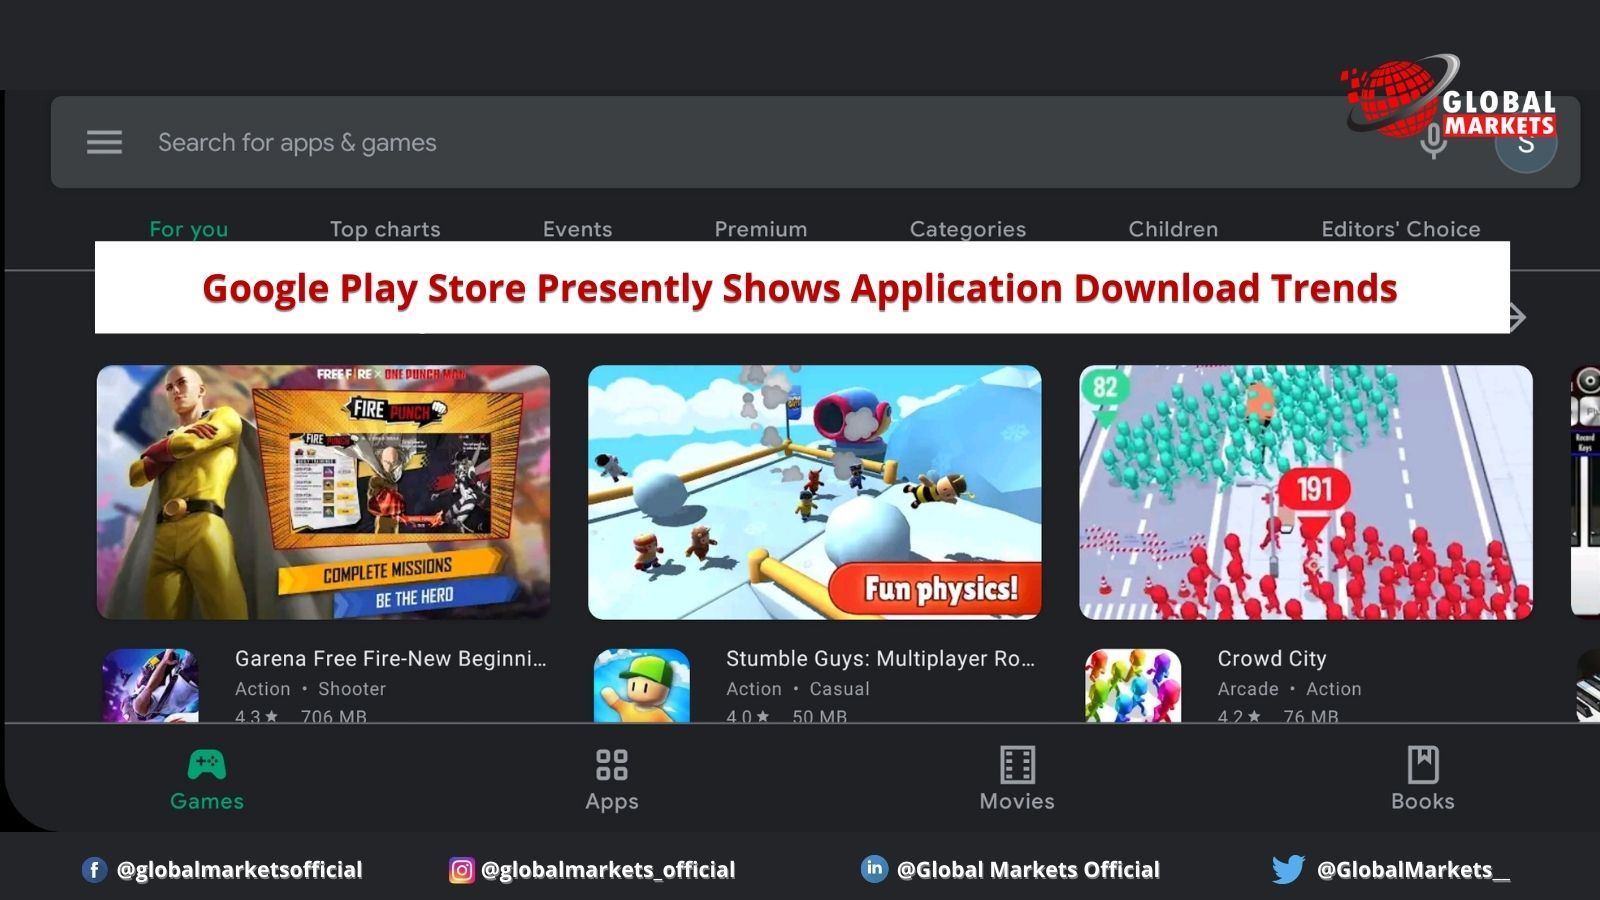 Google Play Store Presently Shows Application Download Trends